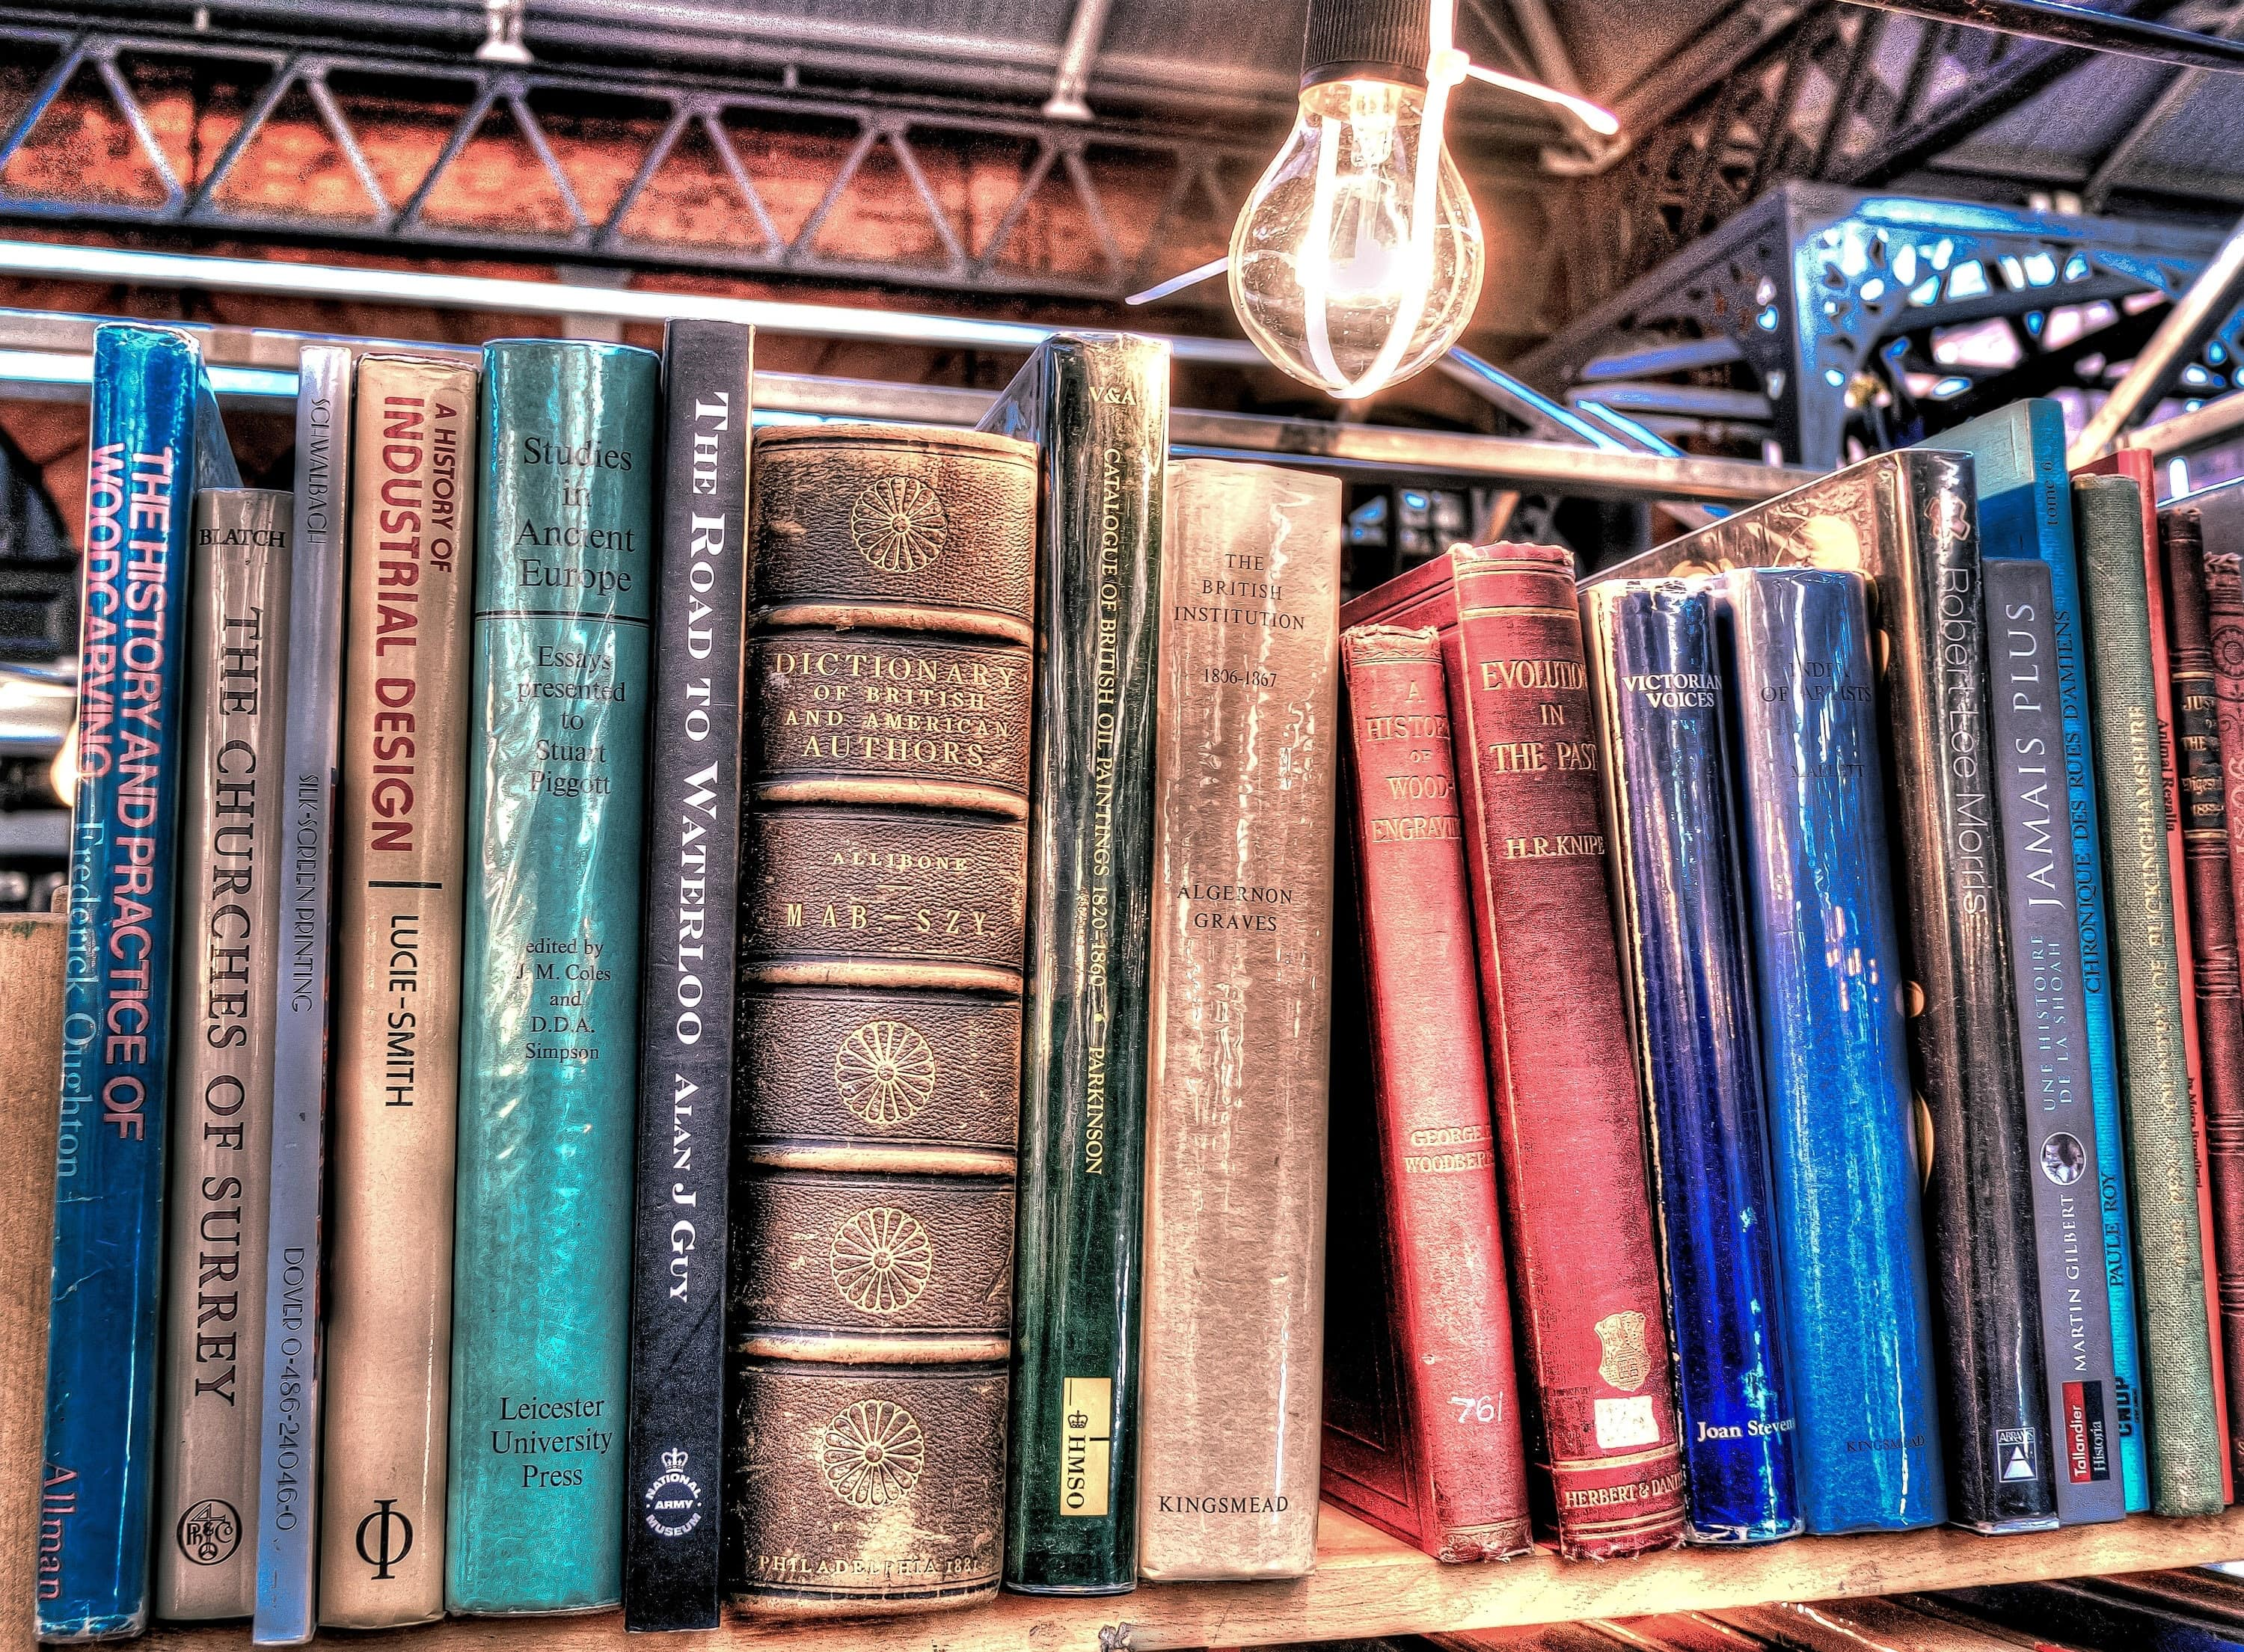 aged-antique-book-stack-459694